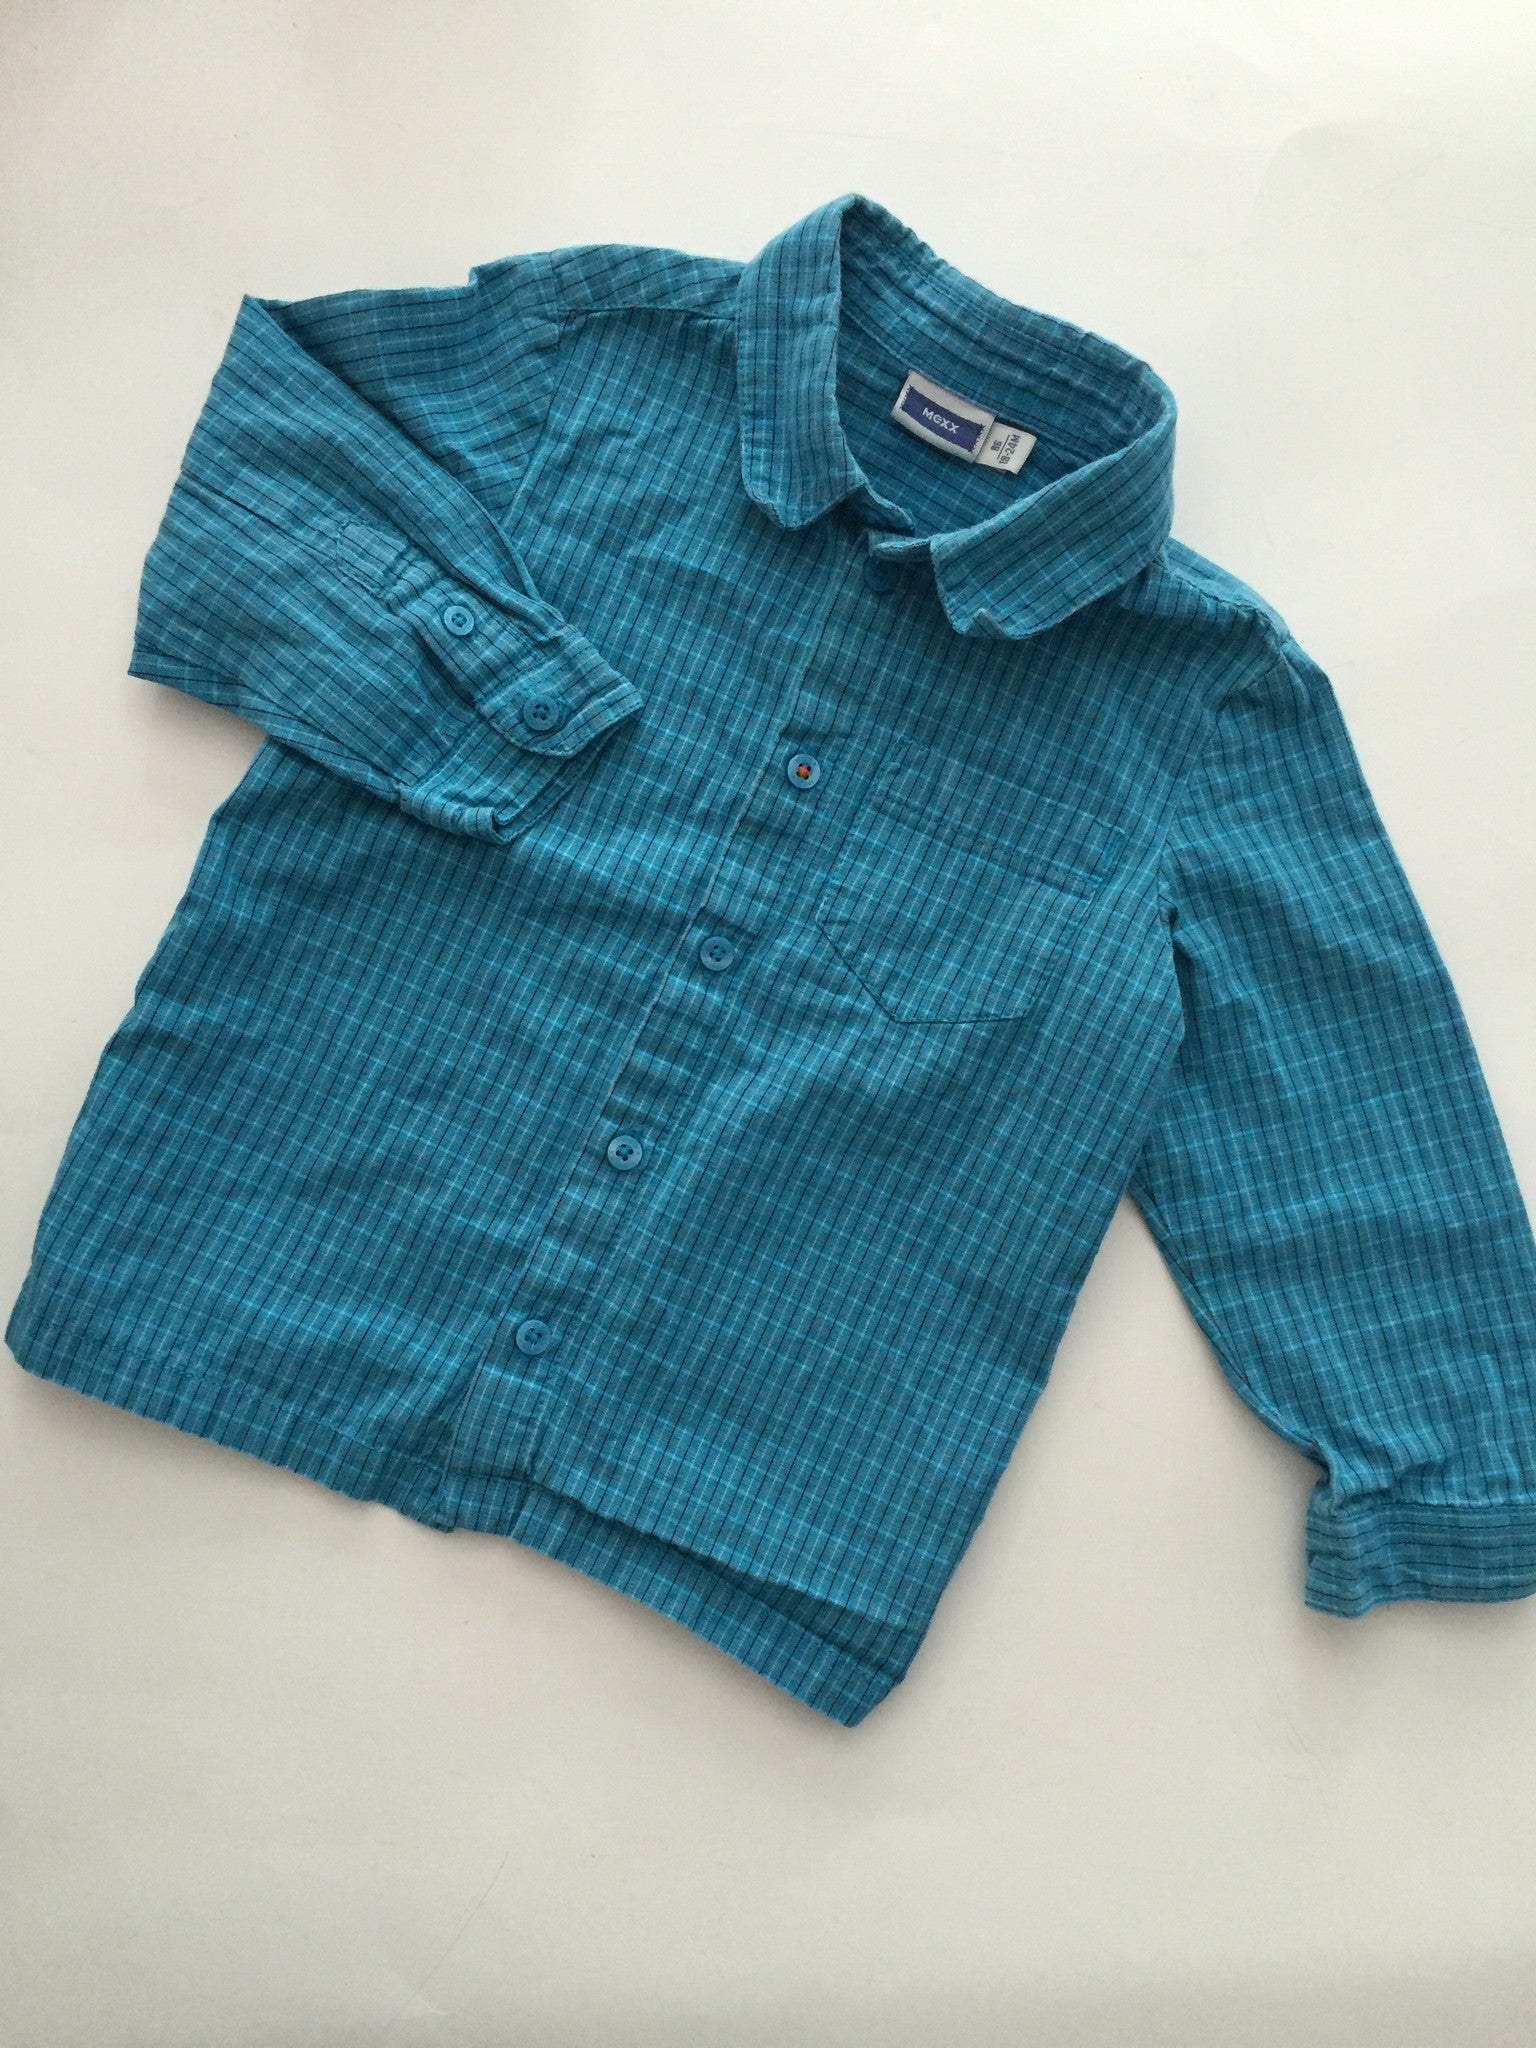 Mexx Button Up Shirt | 18-24M